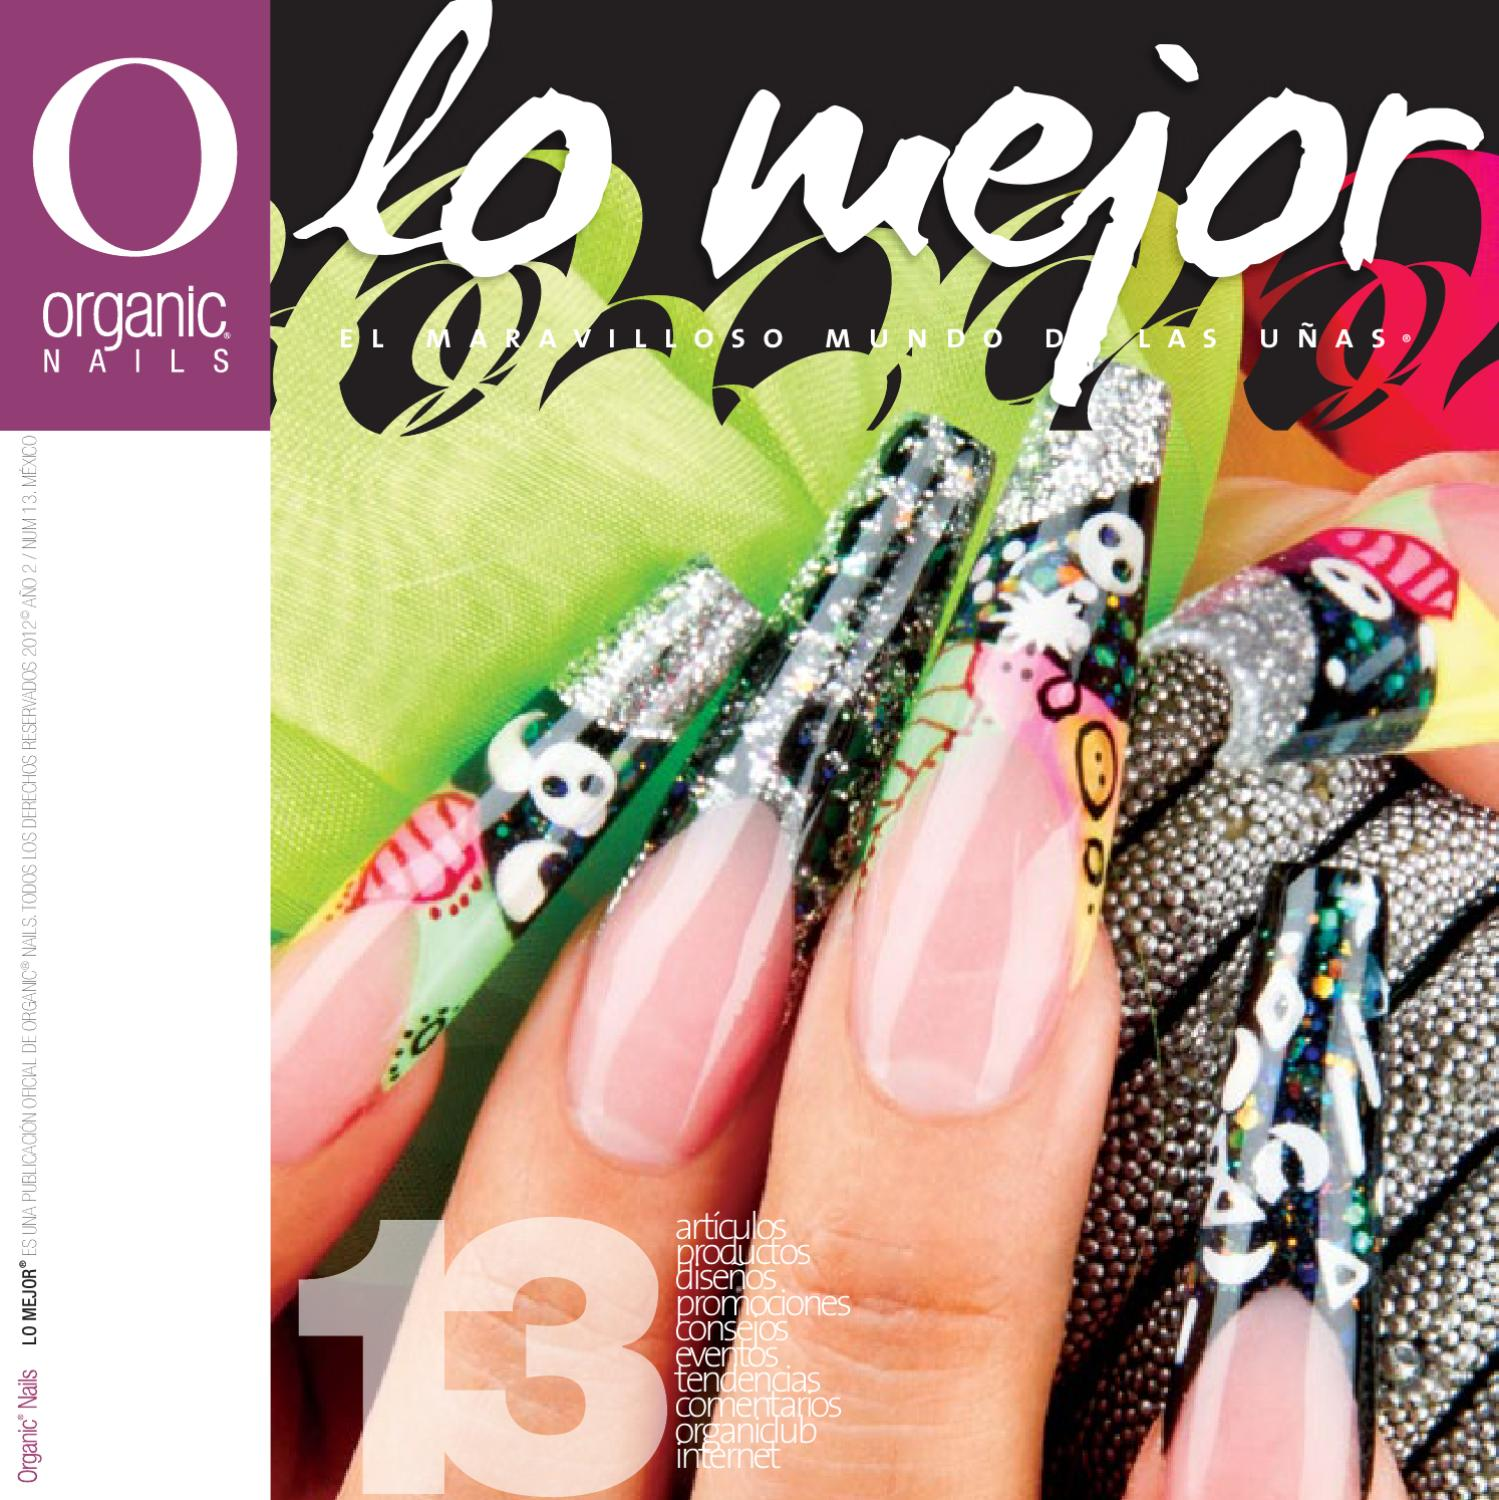 Lo Mejor 13 / Organic® Nails by Organic Nails® - issuu